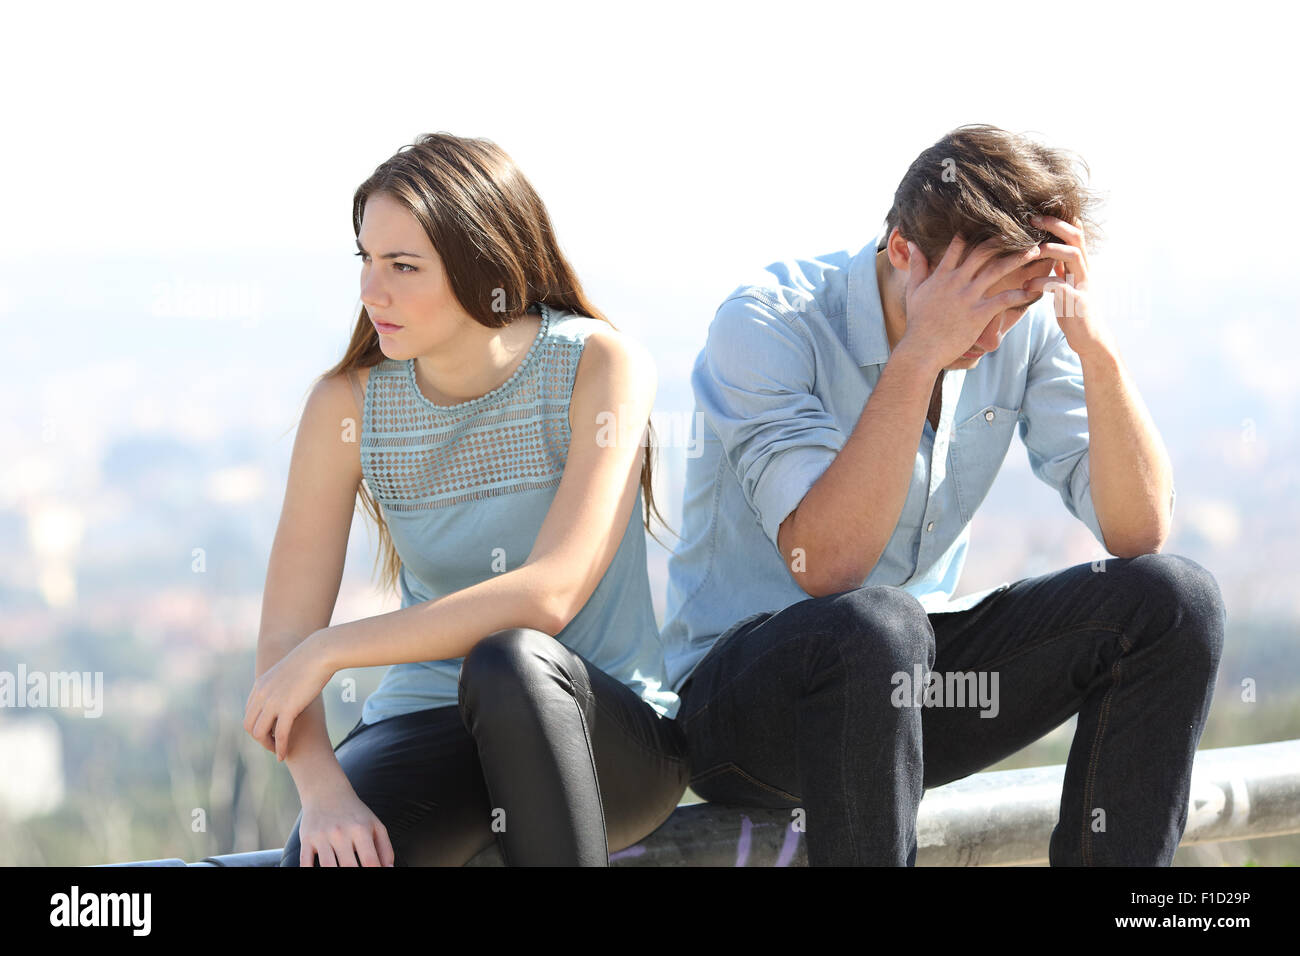 Bad girl arguing with her couple breakup concept with the city in the background - Stock Image